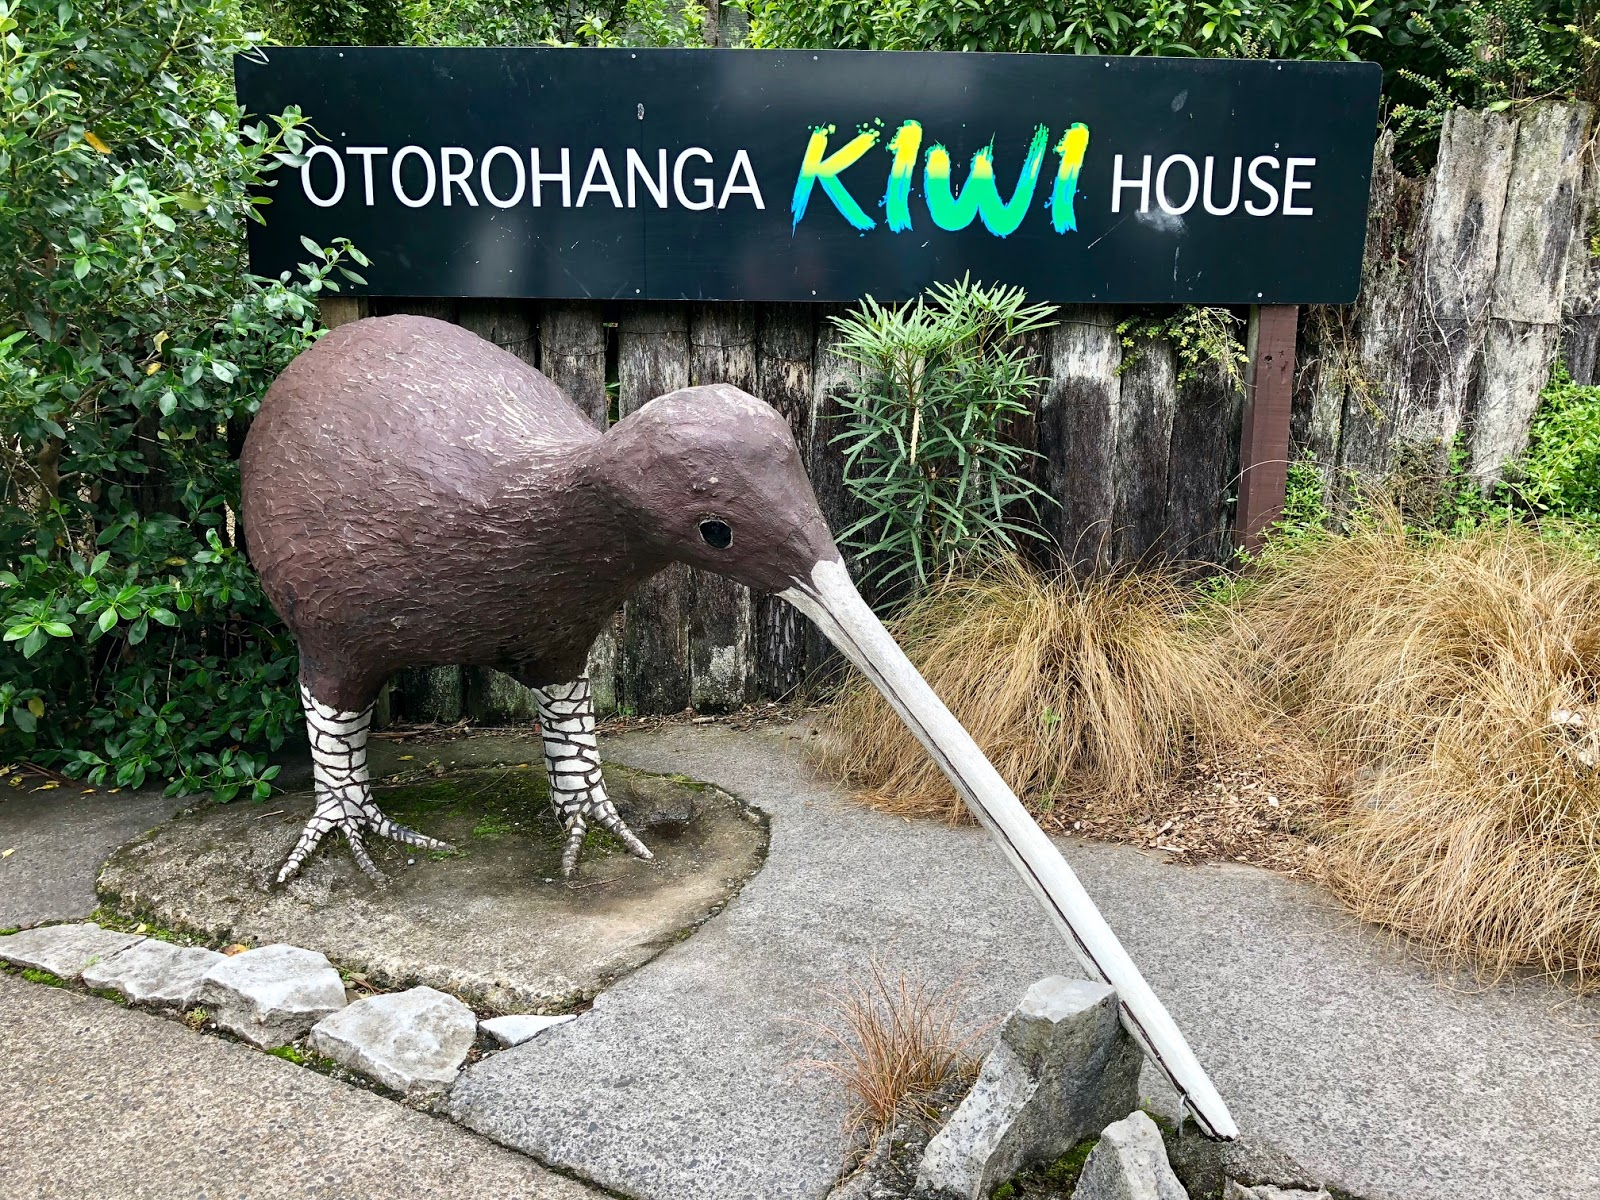 Kiwi House New Zealand Best Place To See Kiwis